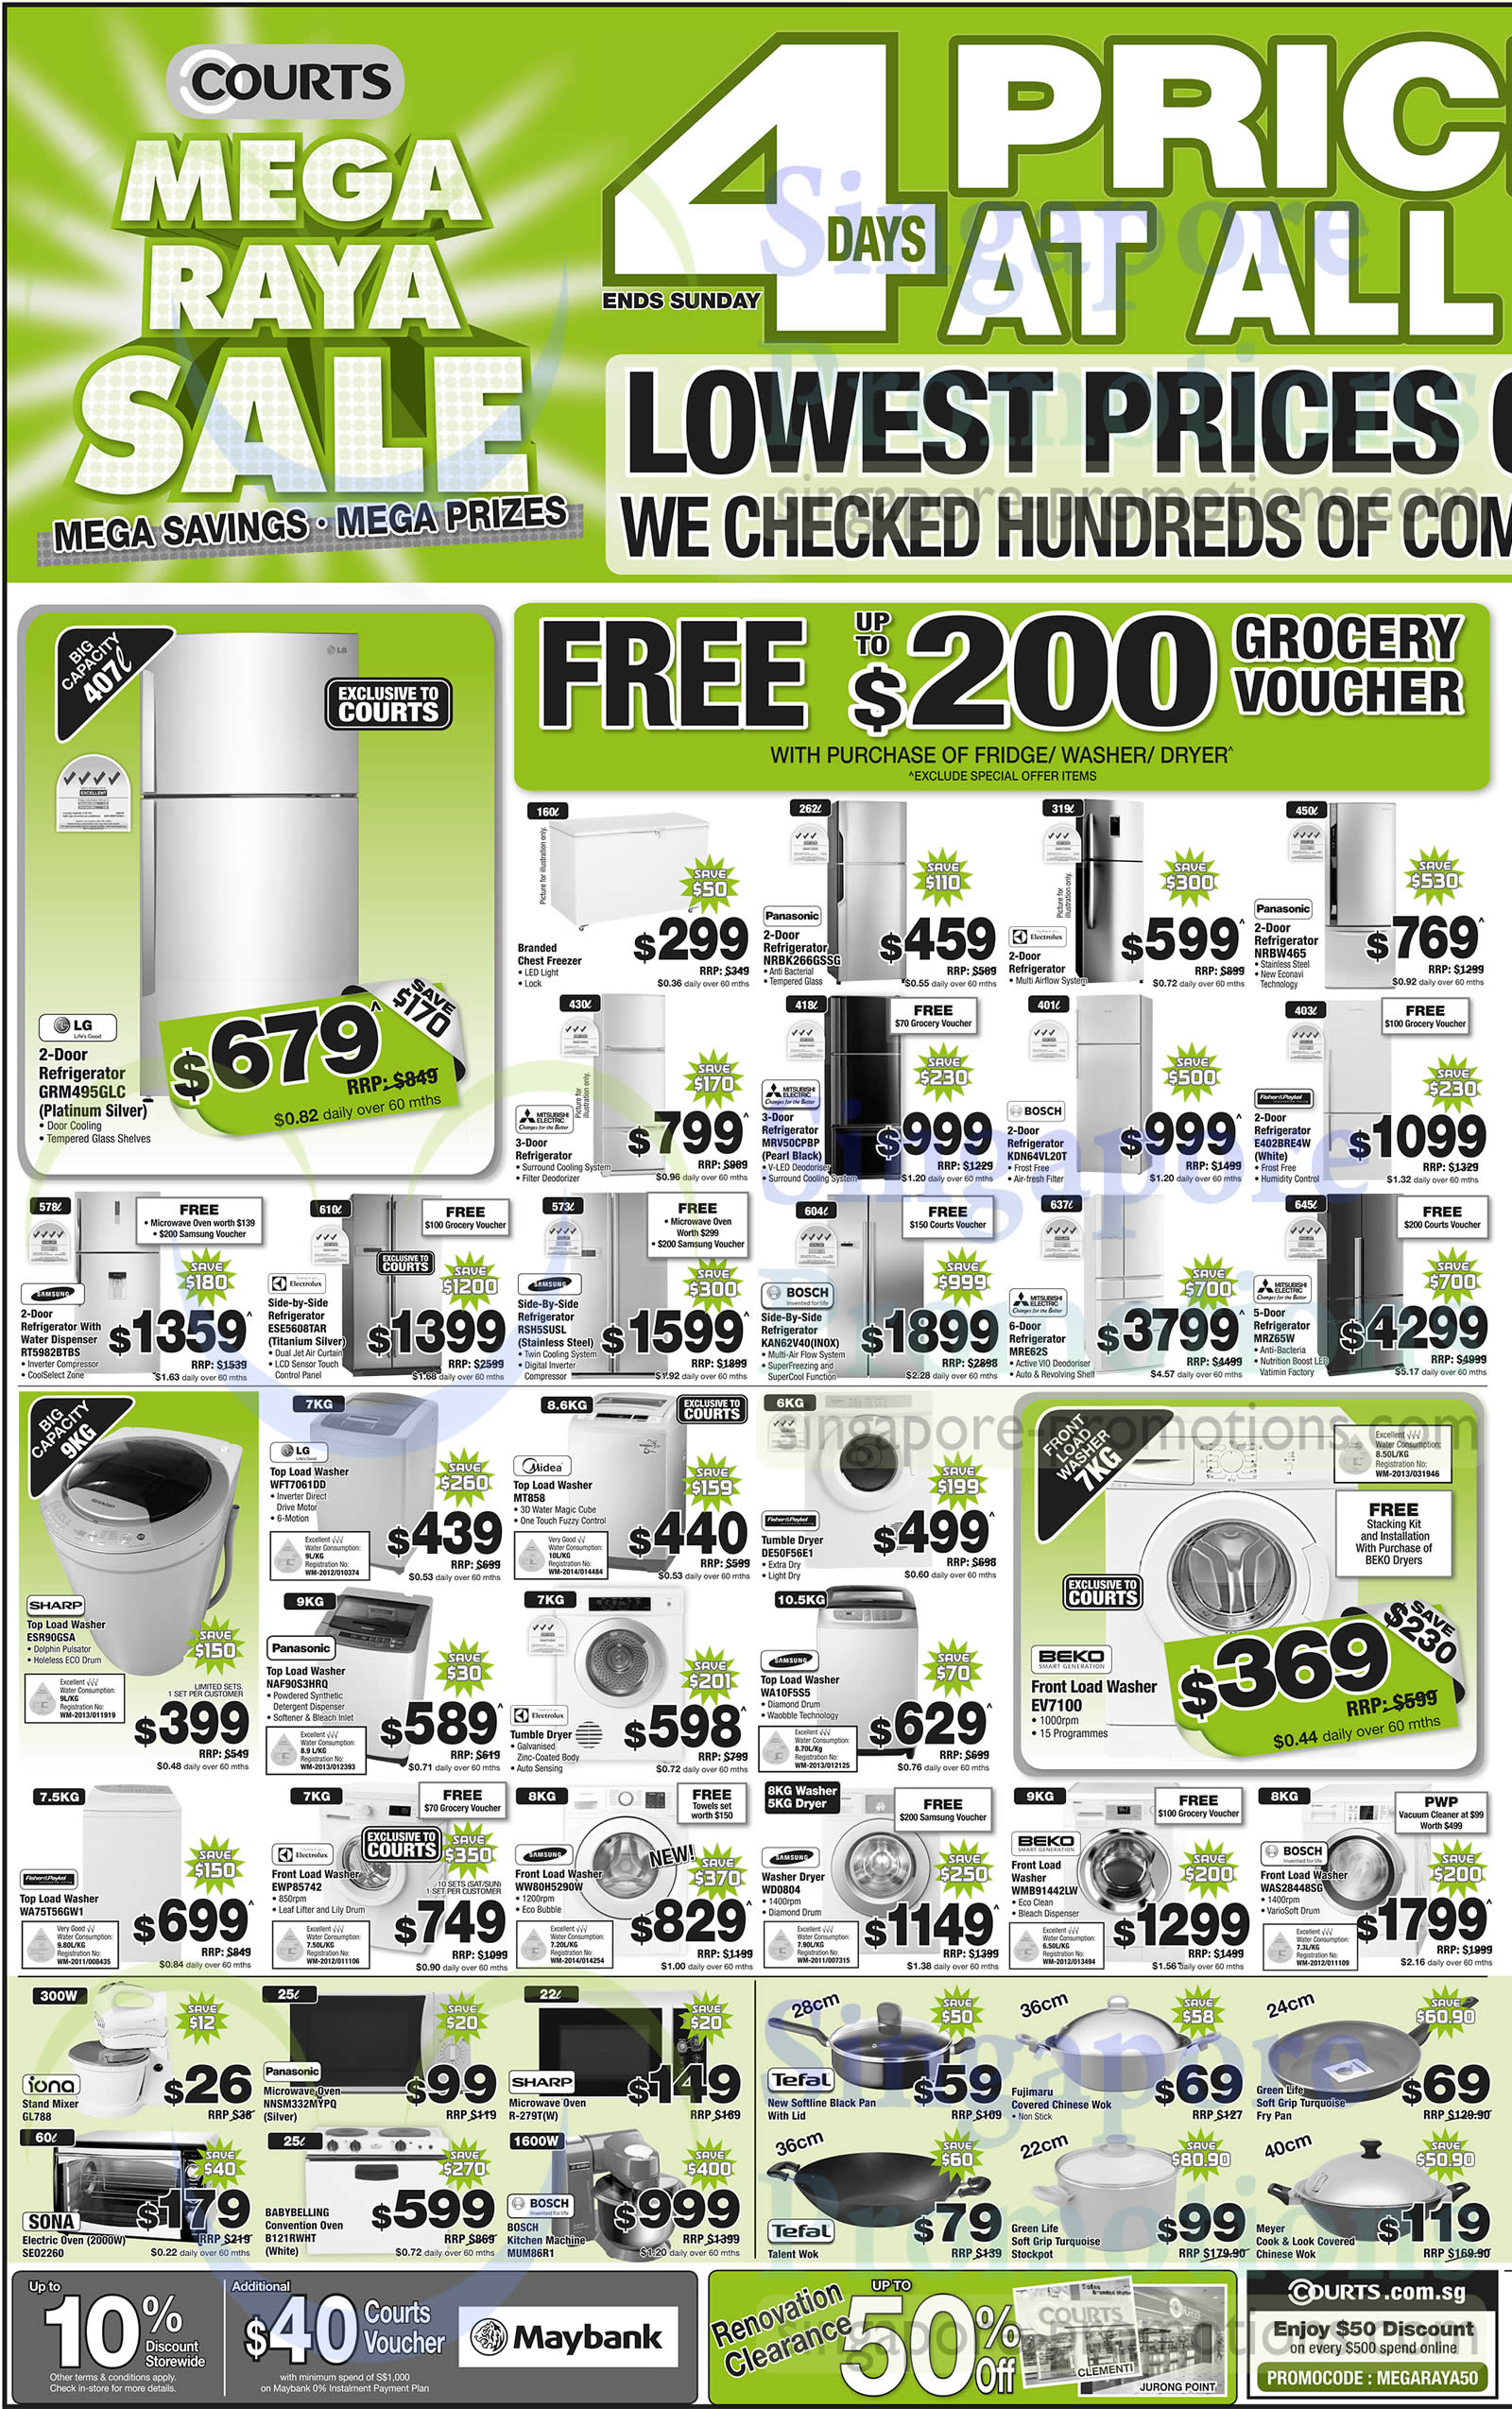 Featured image for Courts Mega Raya Sale Offers 29 May - 1 Jun 2014